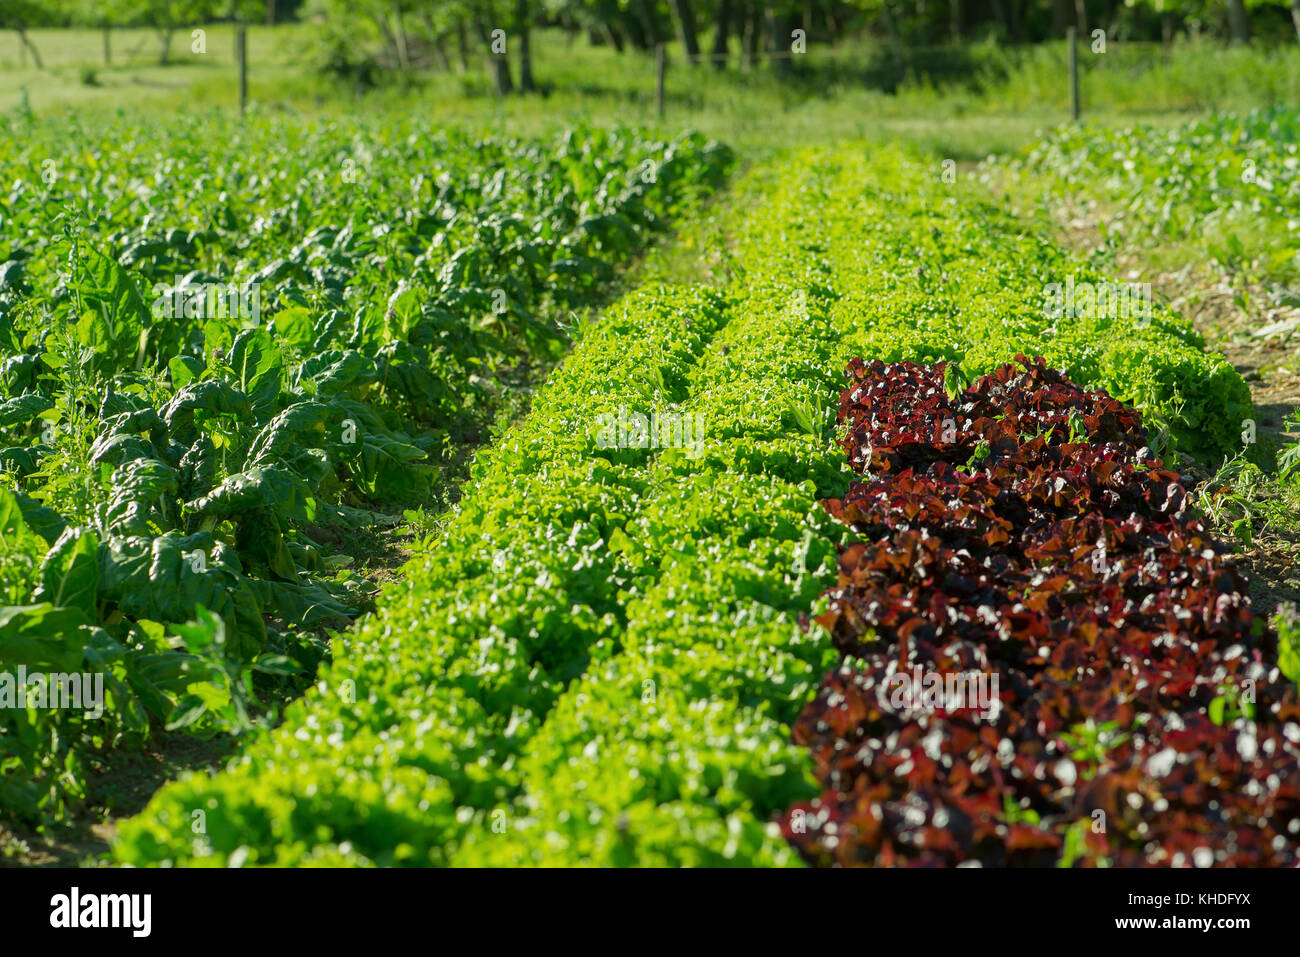 Lettuces growing on farm Stock Photo